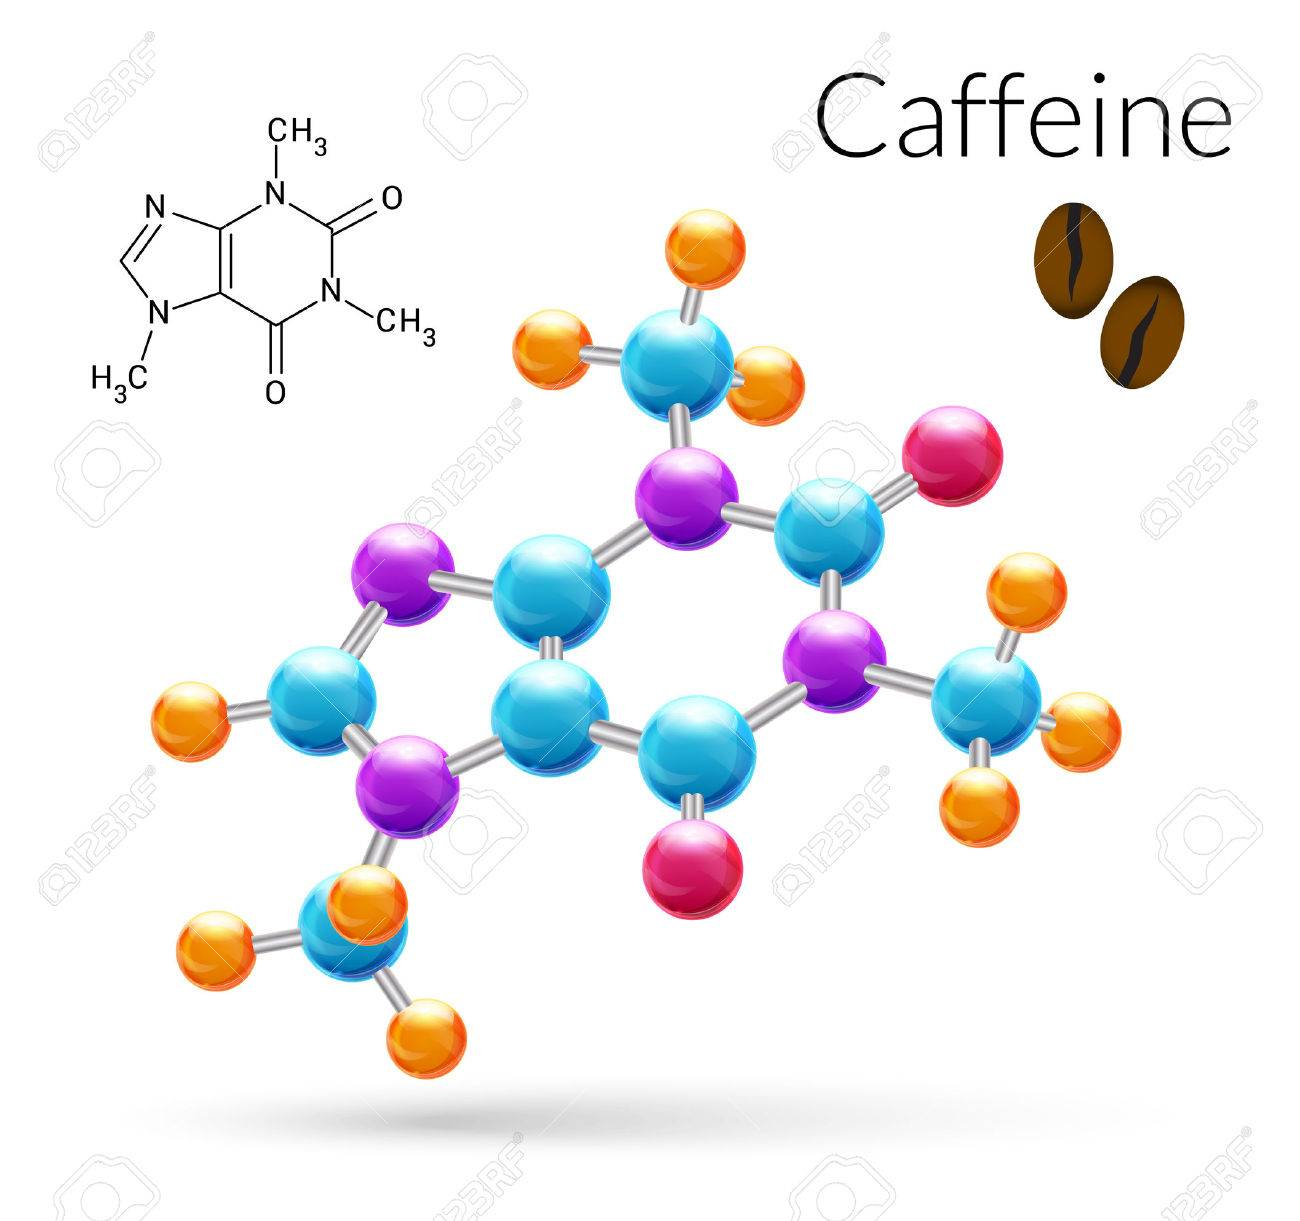 Caffeine 3d Molecule Chemical Science Atomic Structure Poster ...